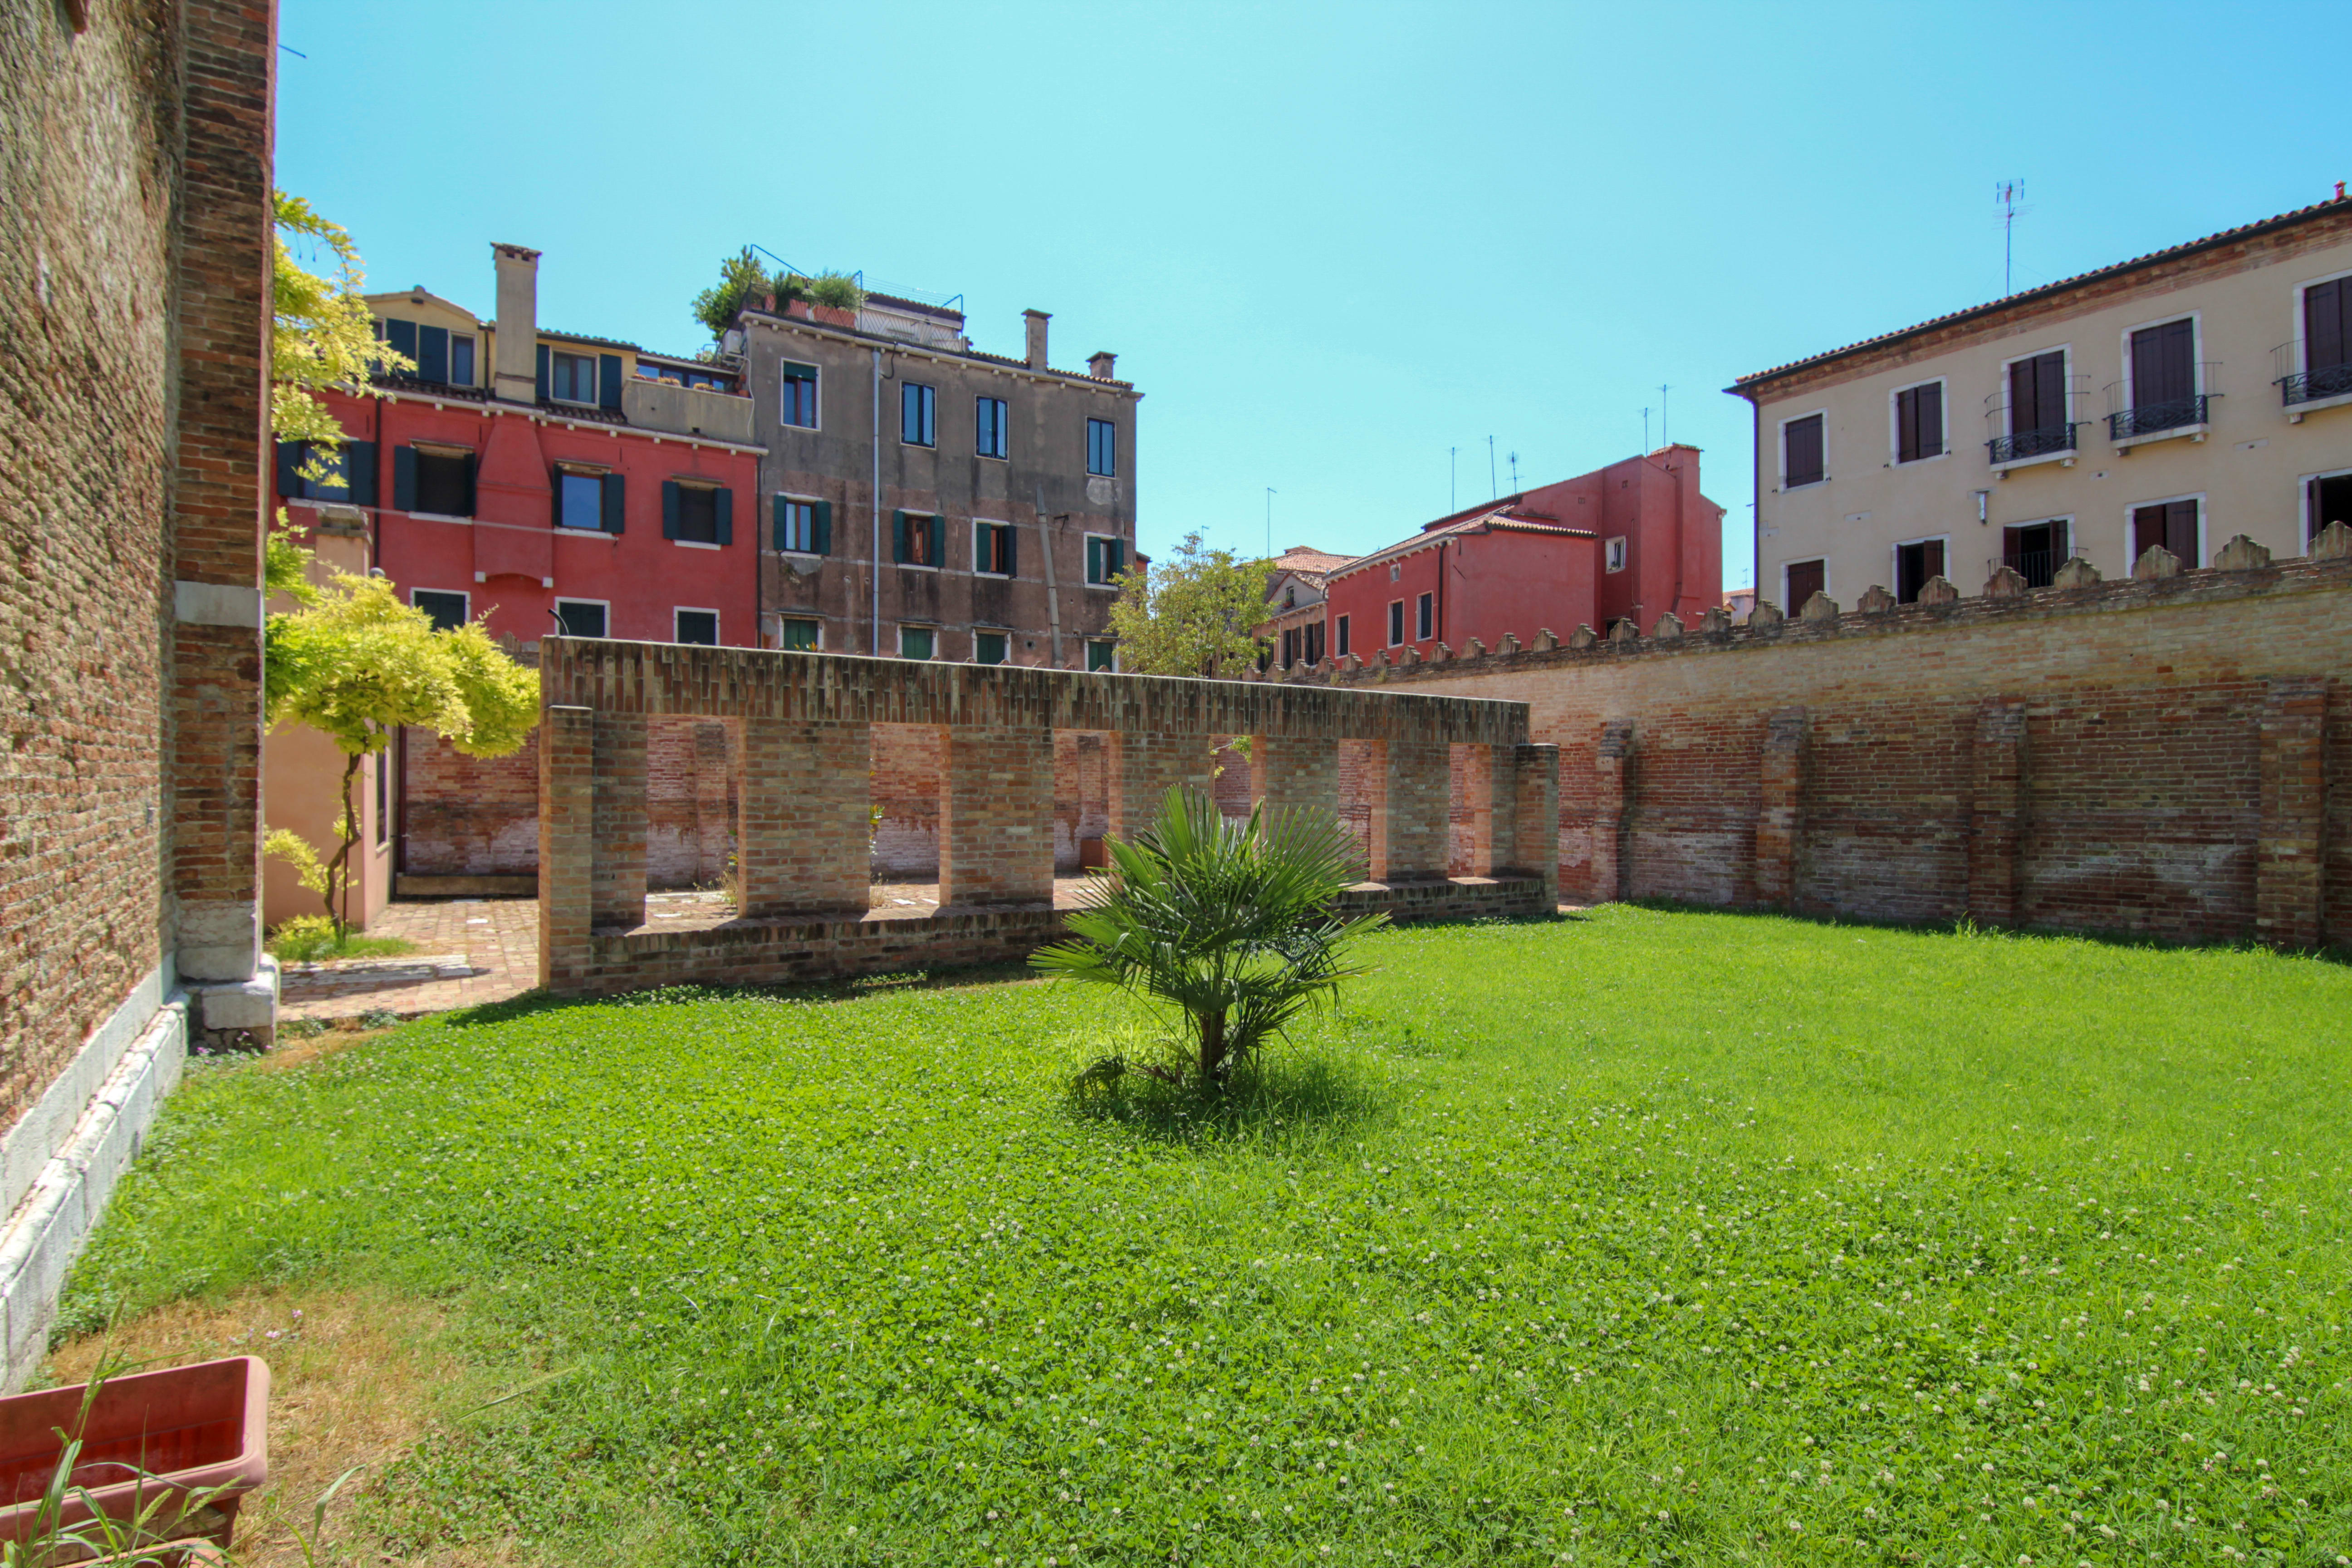 HOSTEL - Ostello S. Fosca - CPU Venice Hostels